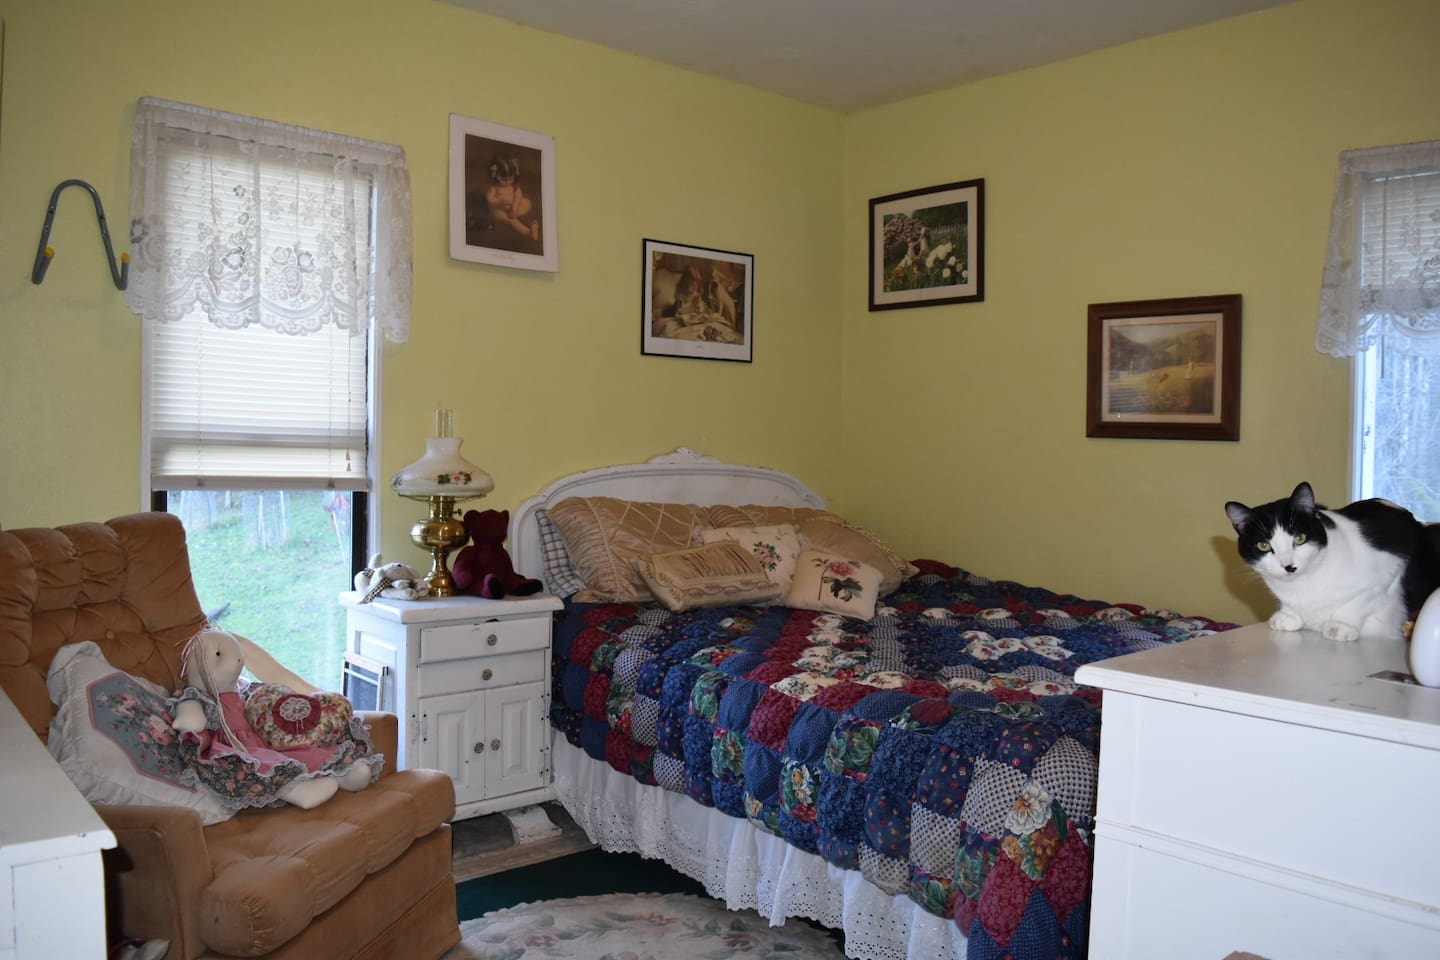 One of our rooms.